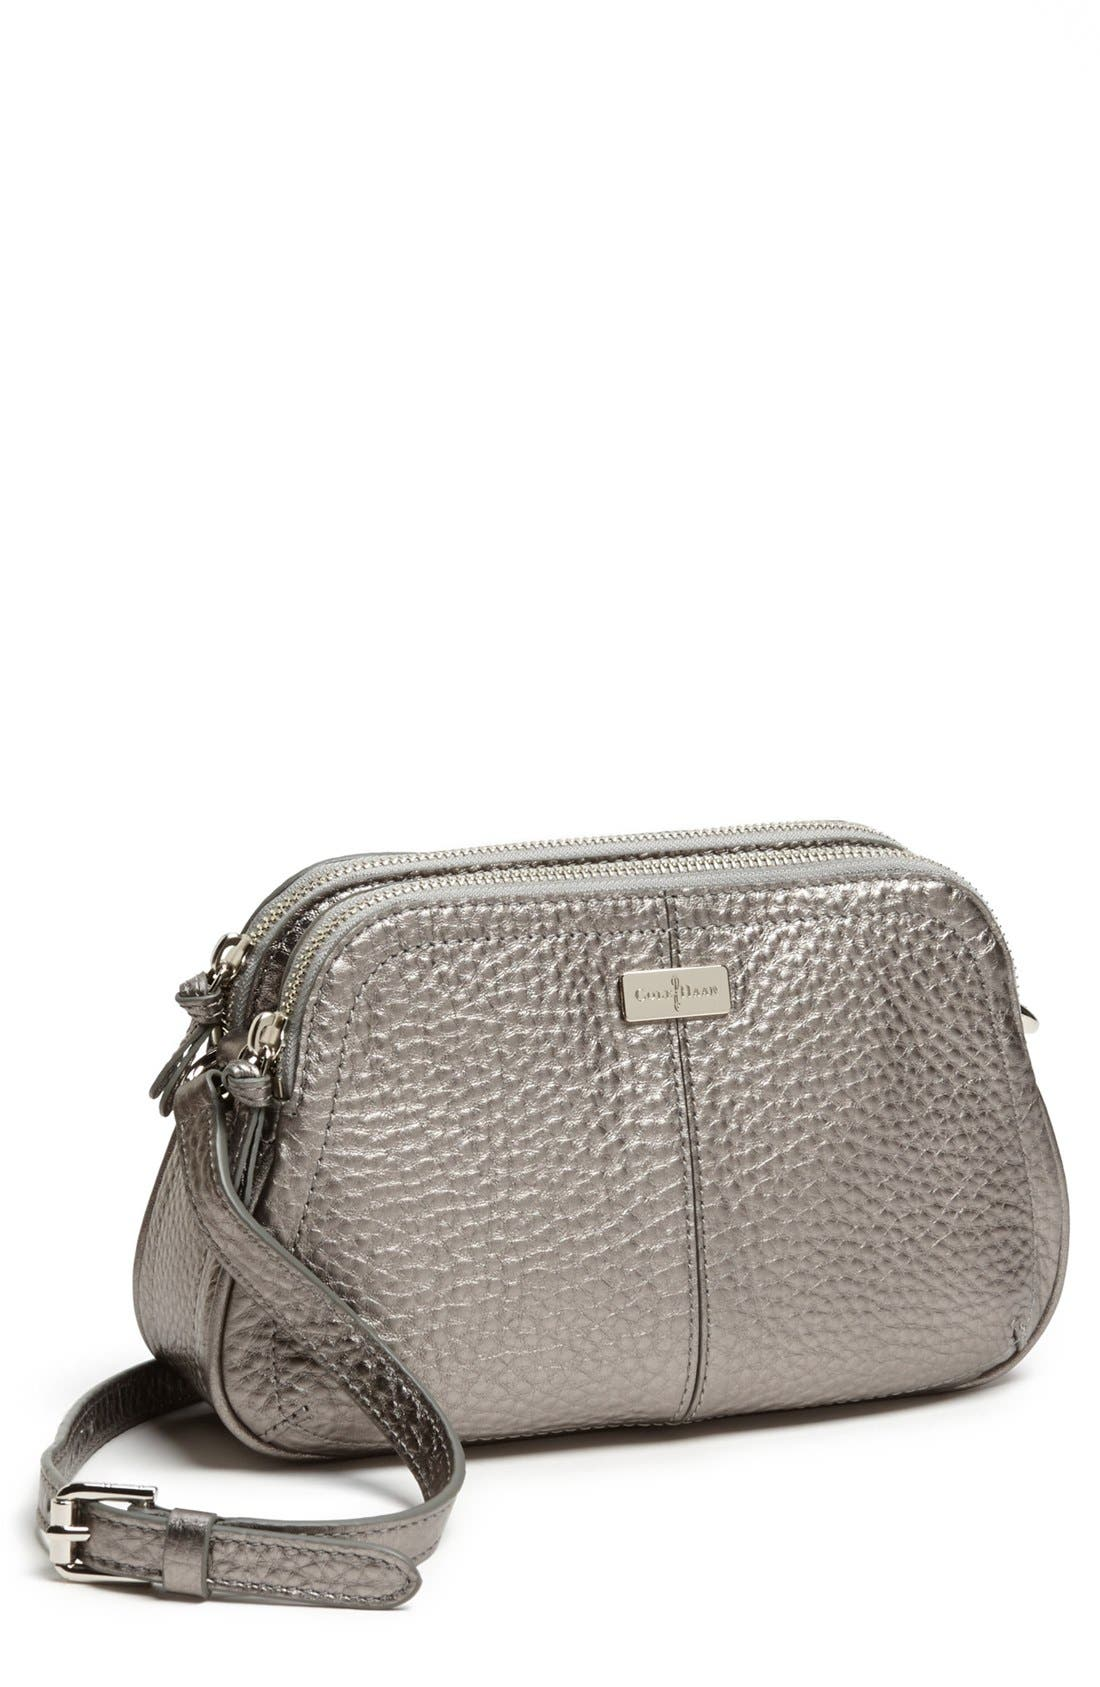 Main Image - Cole Haan 'Village' Crossbody Bag